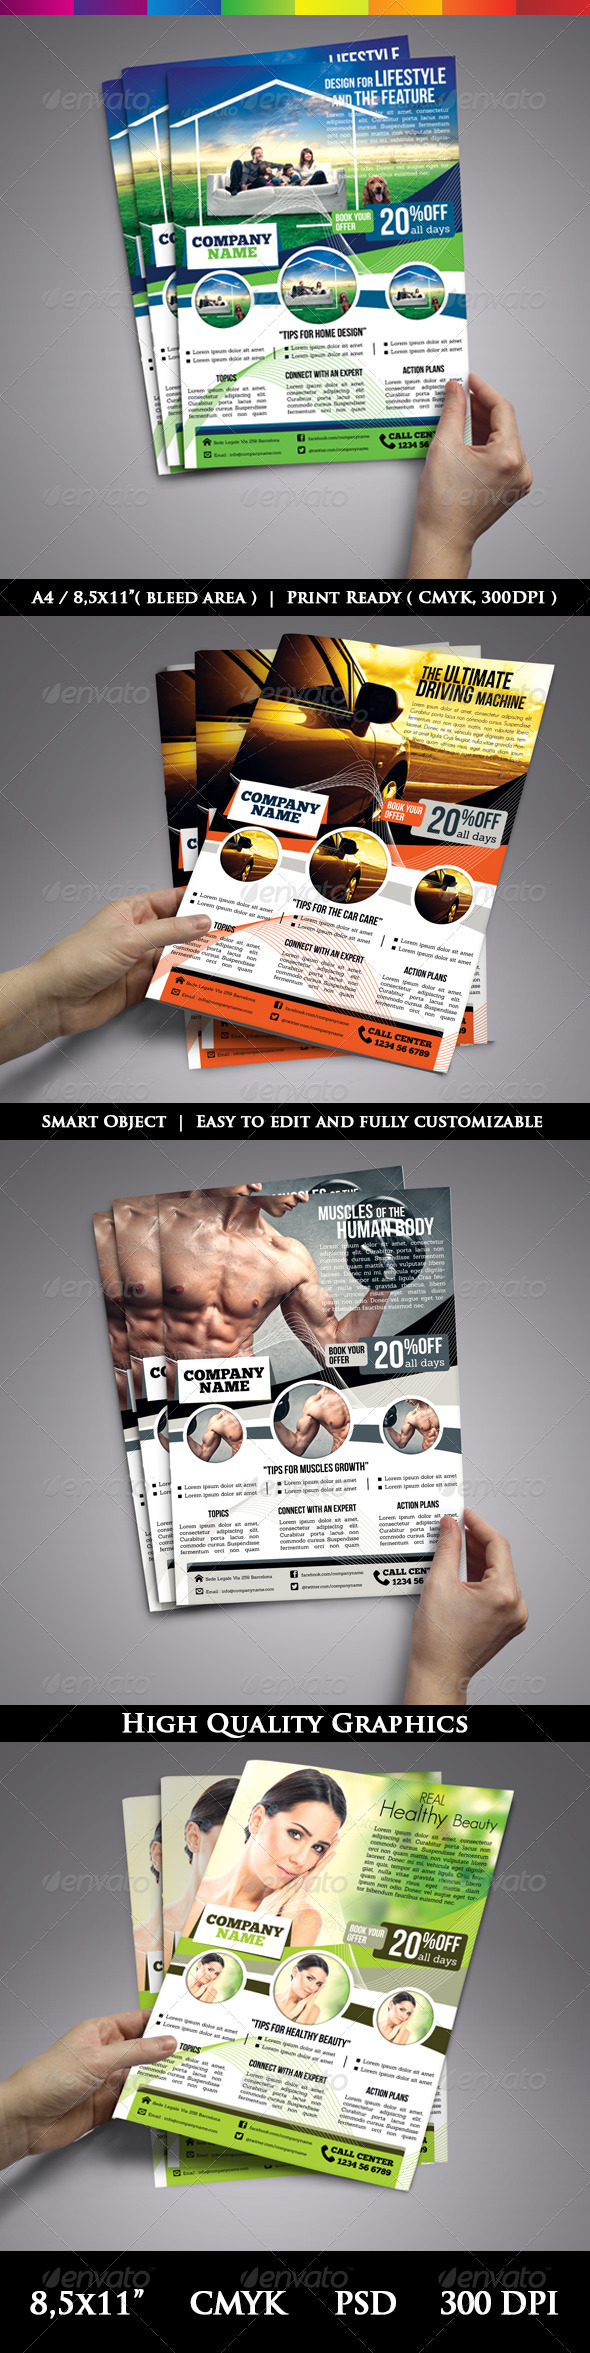 Multi-Purpose Modern Flyer Template For Business - Corporate Flyers